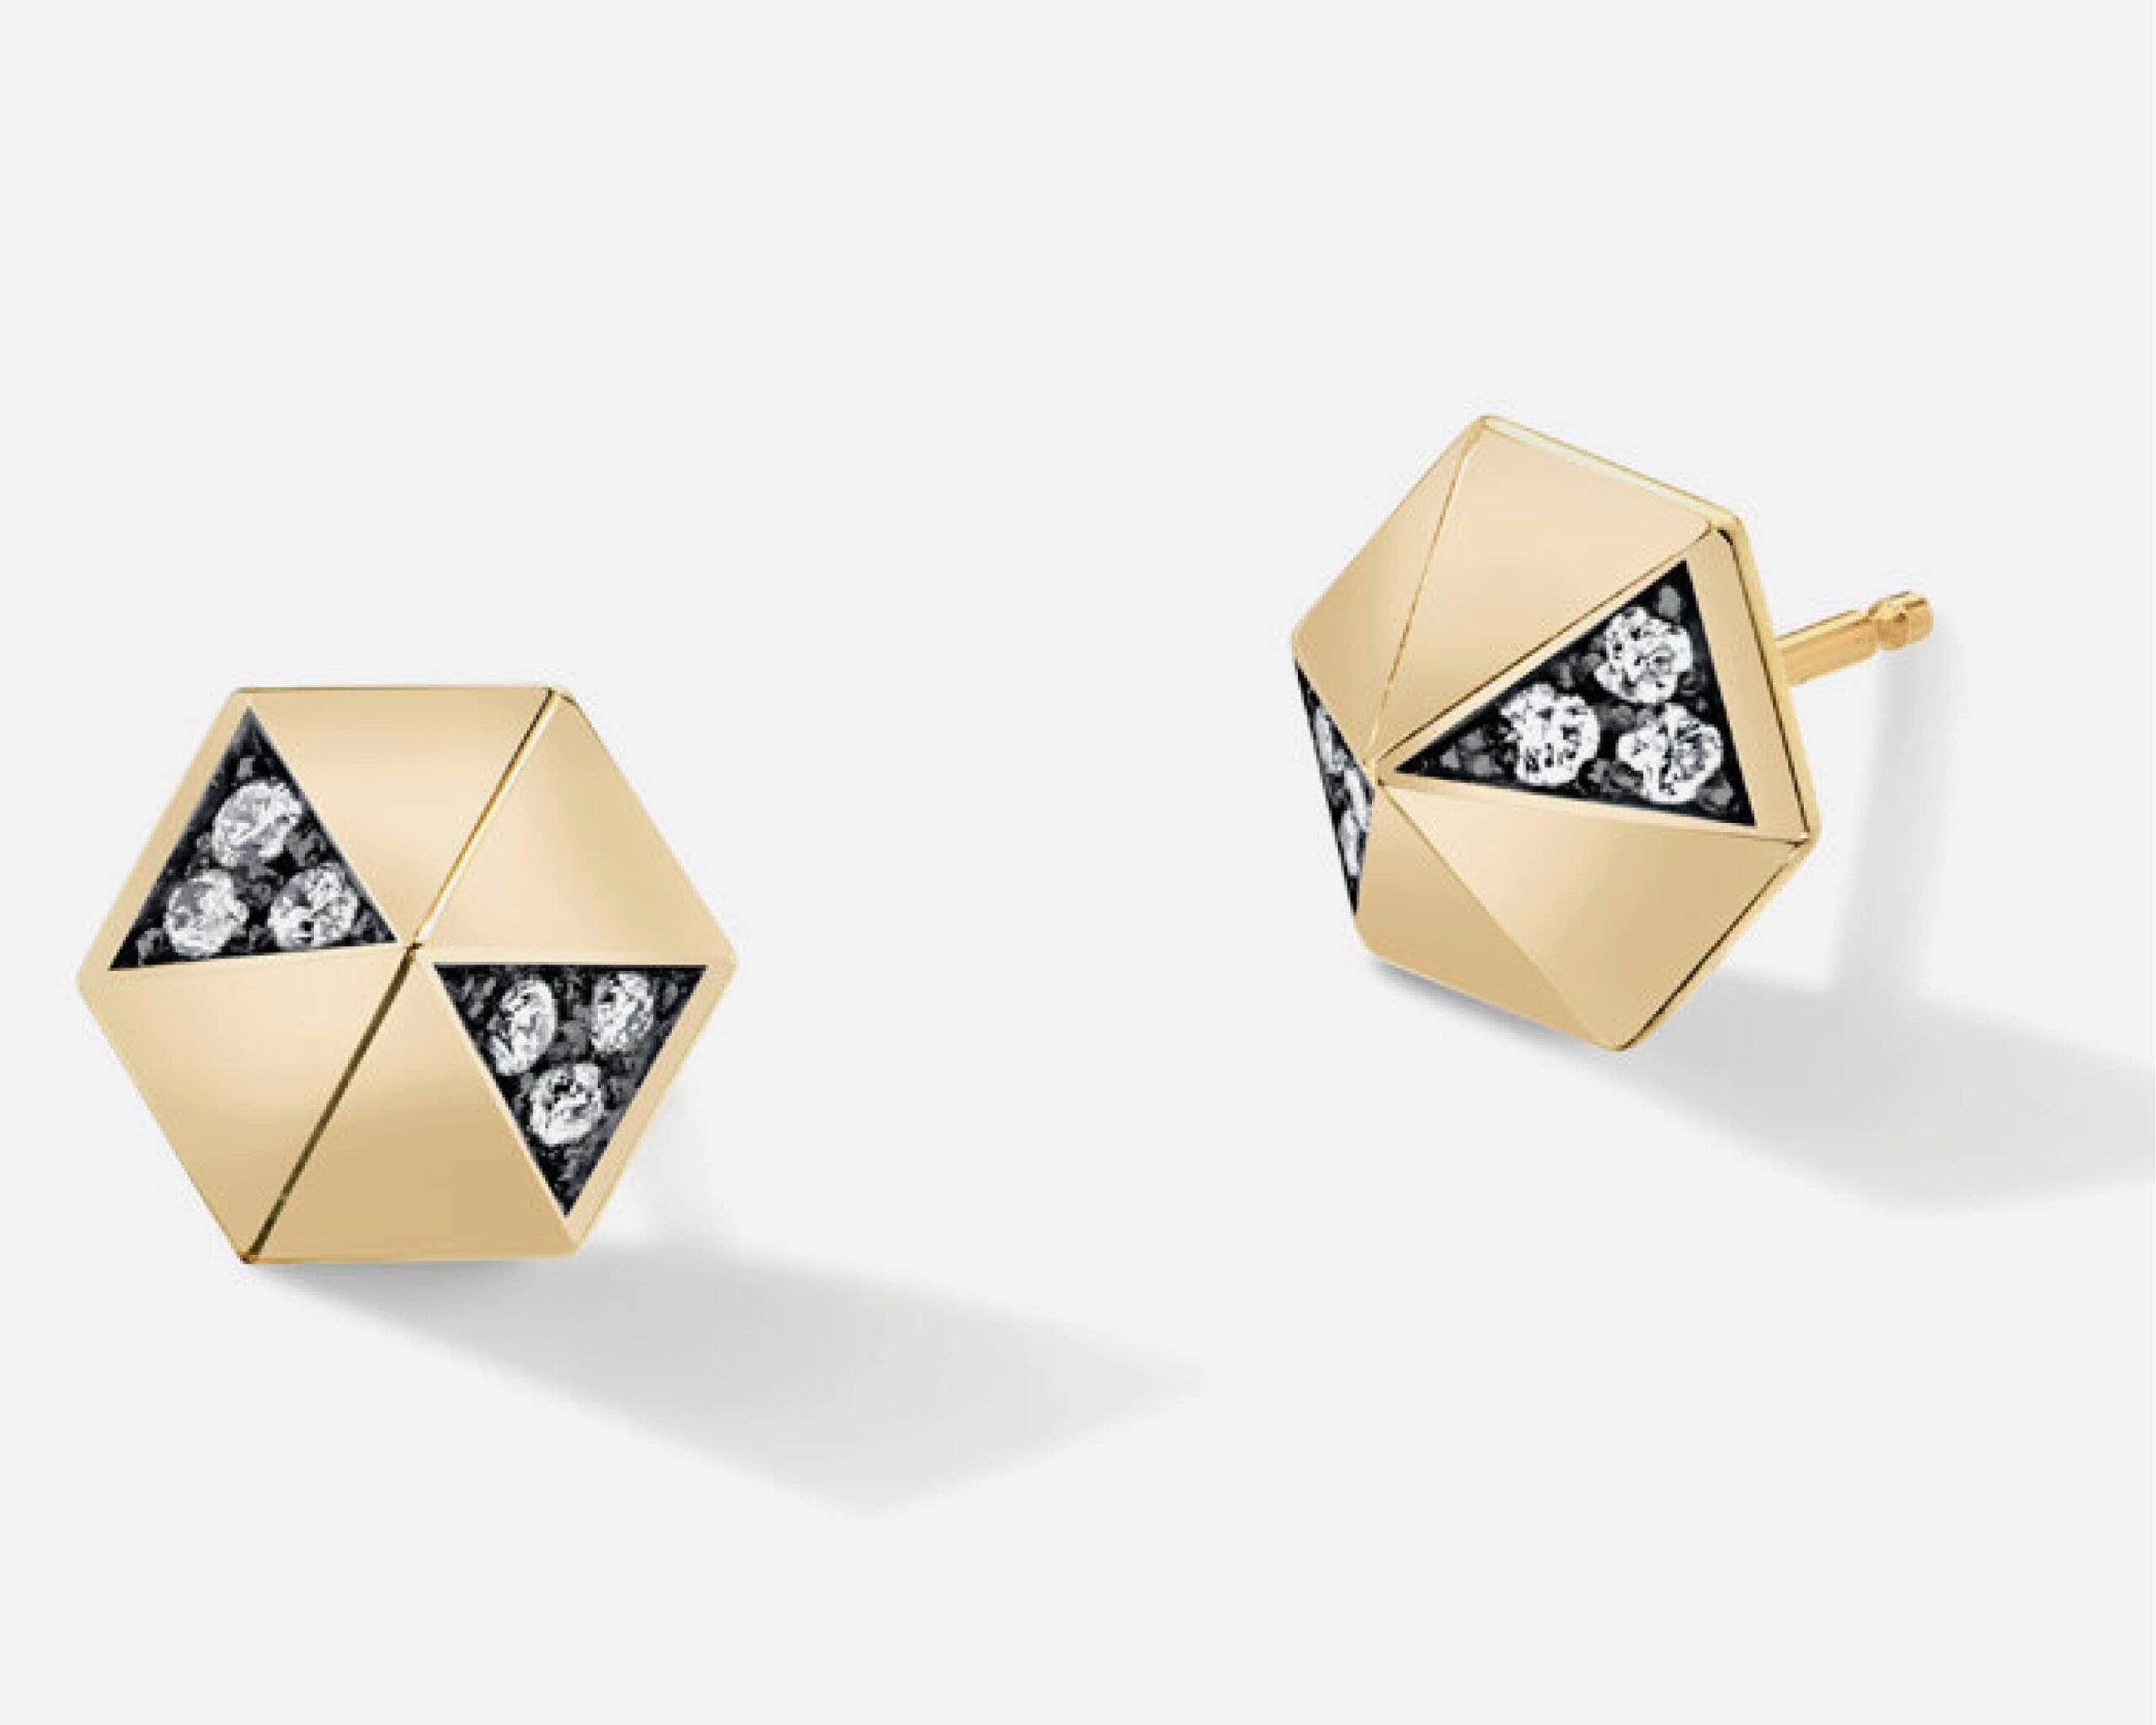 Pyramid Diamond Stud Earrings from Harwell Godfrey featuring a geometric pyramid earring design with white diamonds set in black rhodium